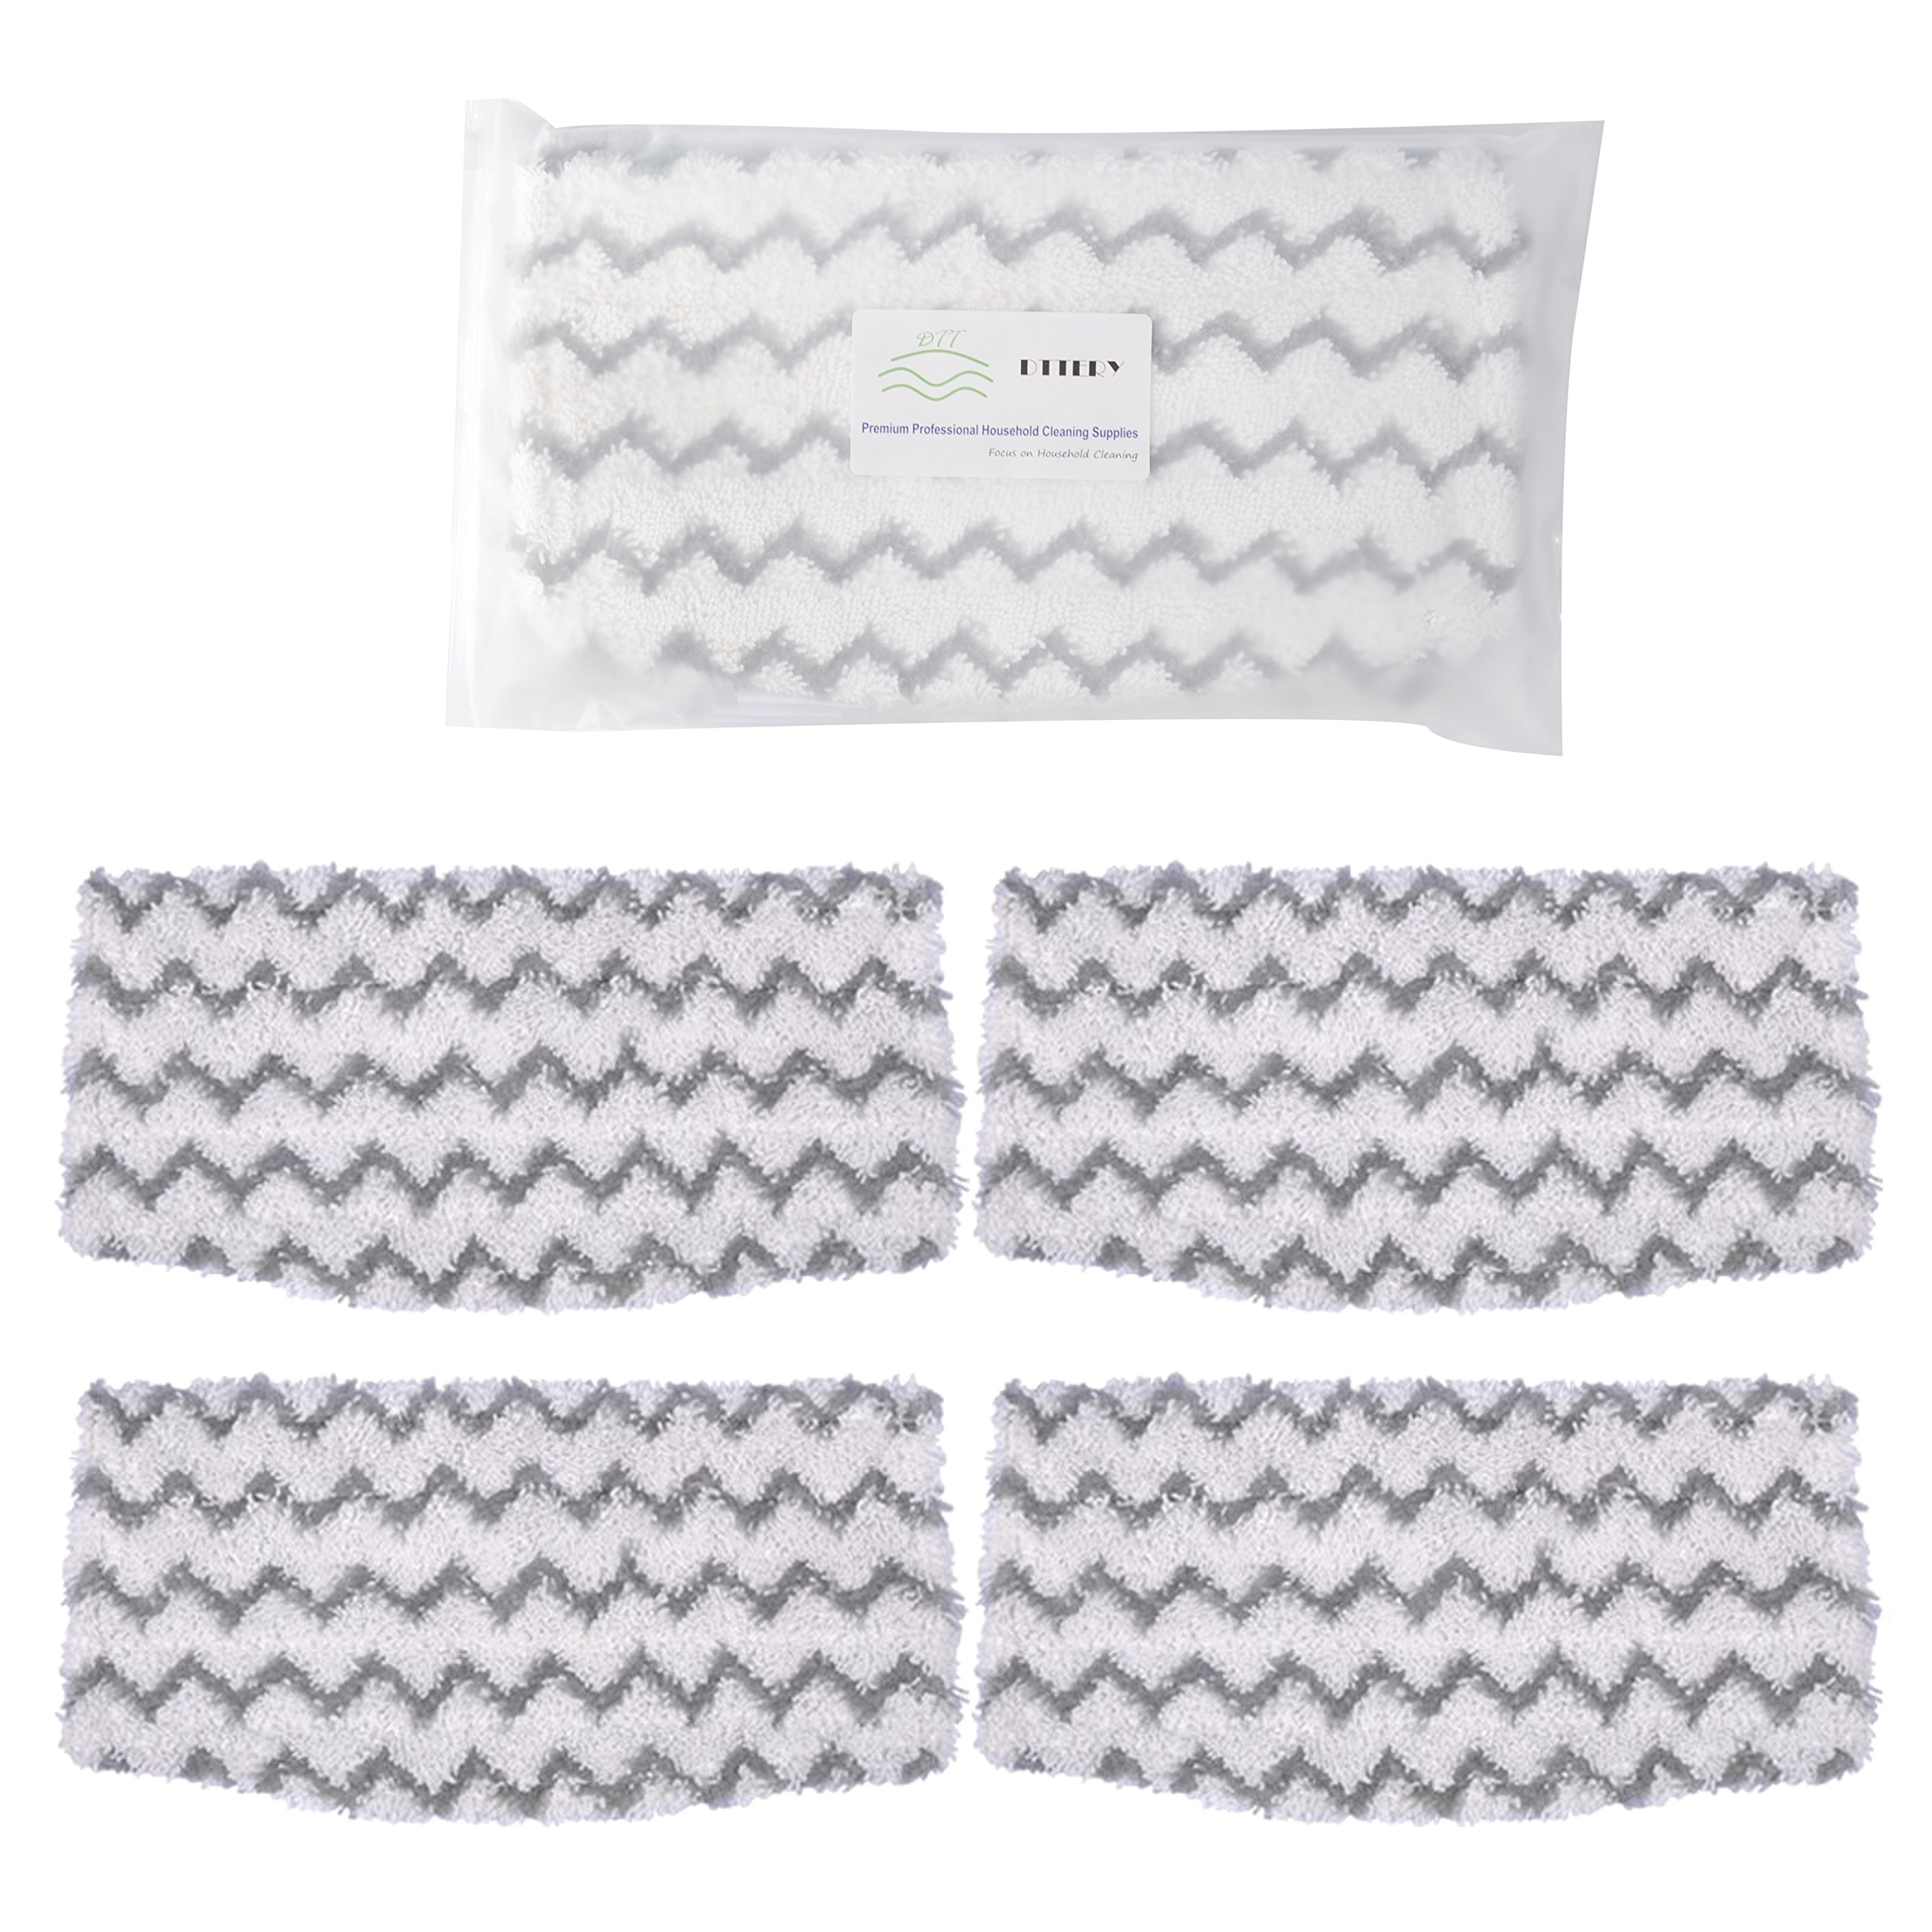 4 Pack Shark Steam Mop S1000 S1000A S1000C S1000WM S1001C Dirt Grip Pads Set Washable Microfiber Mop Pads Cleaning Pads Replacement Parts